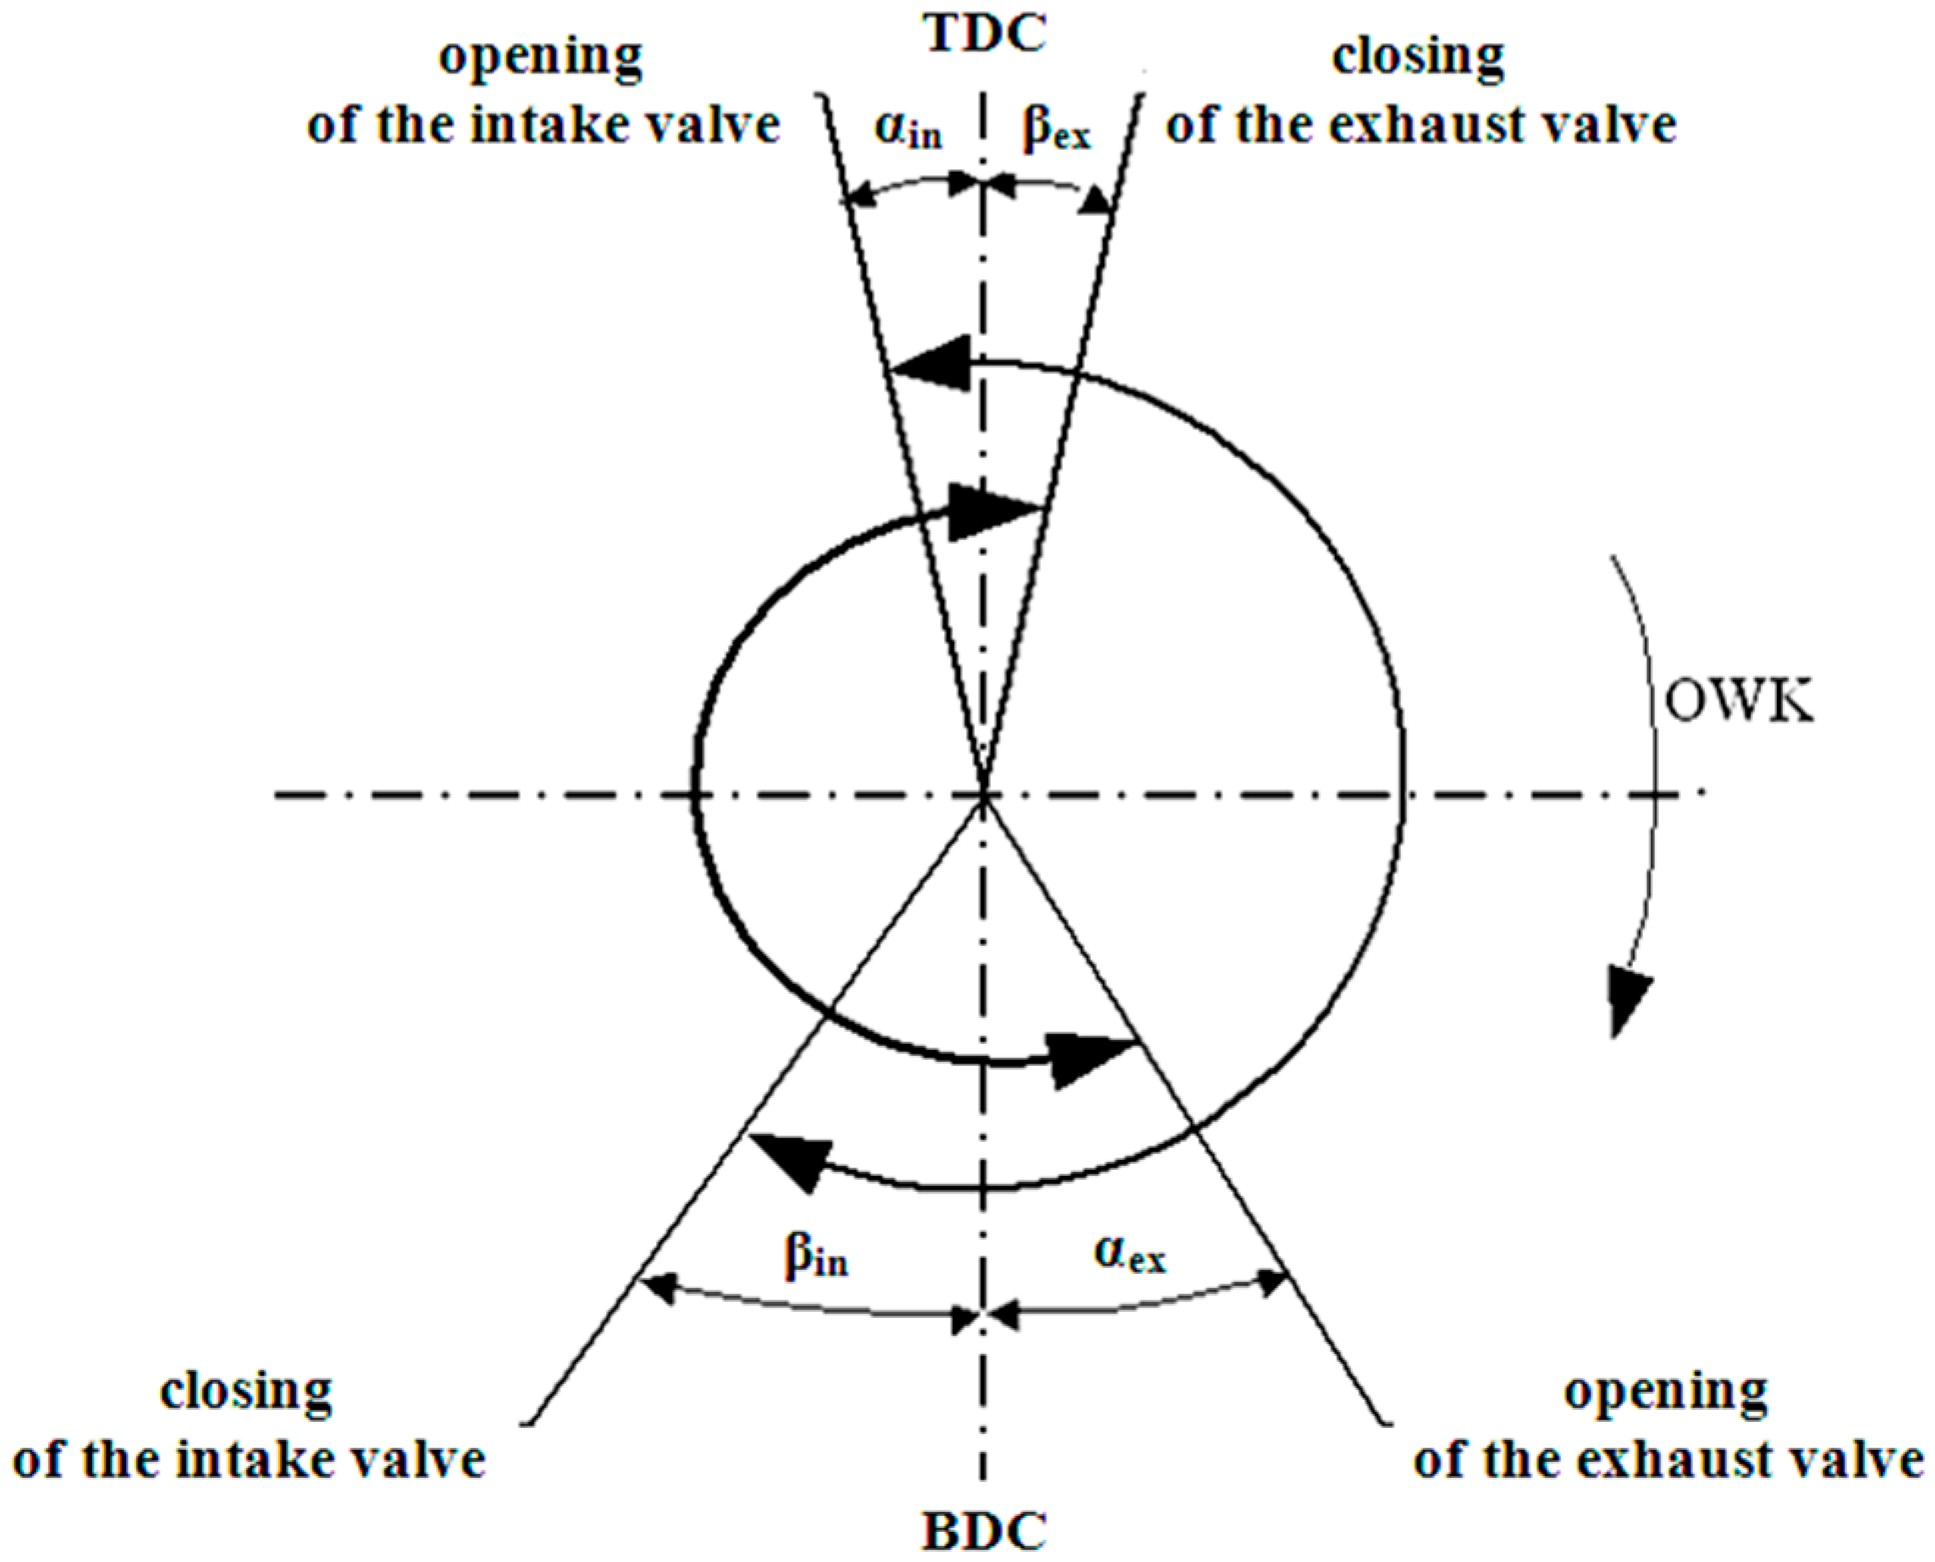 Valve Timing Diagram Of Si Engine Entropy Free Full Text Of Valve Timing Diagram Of Si Engine